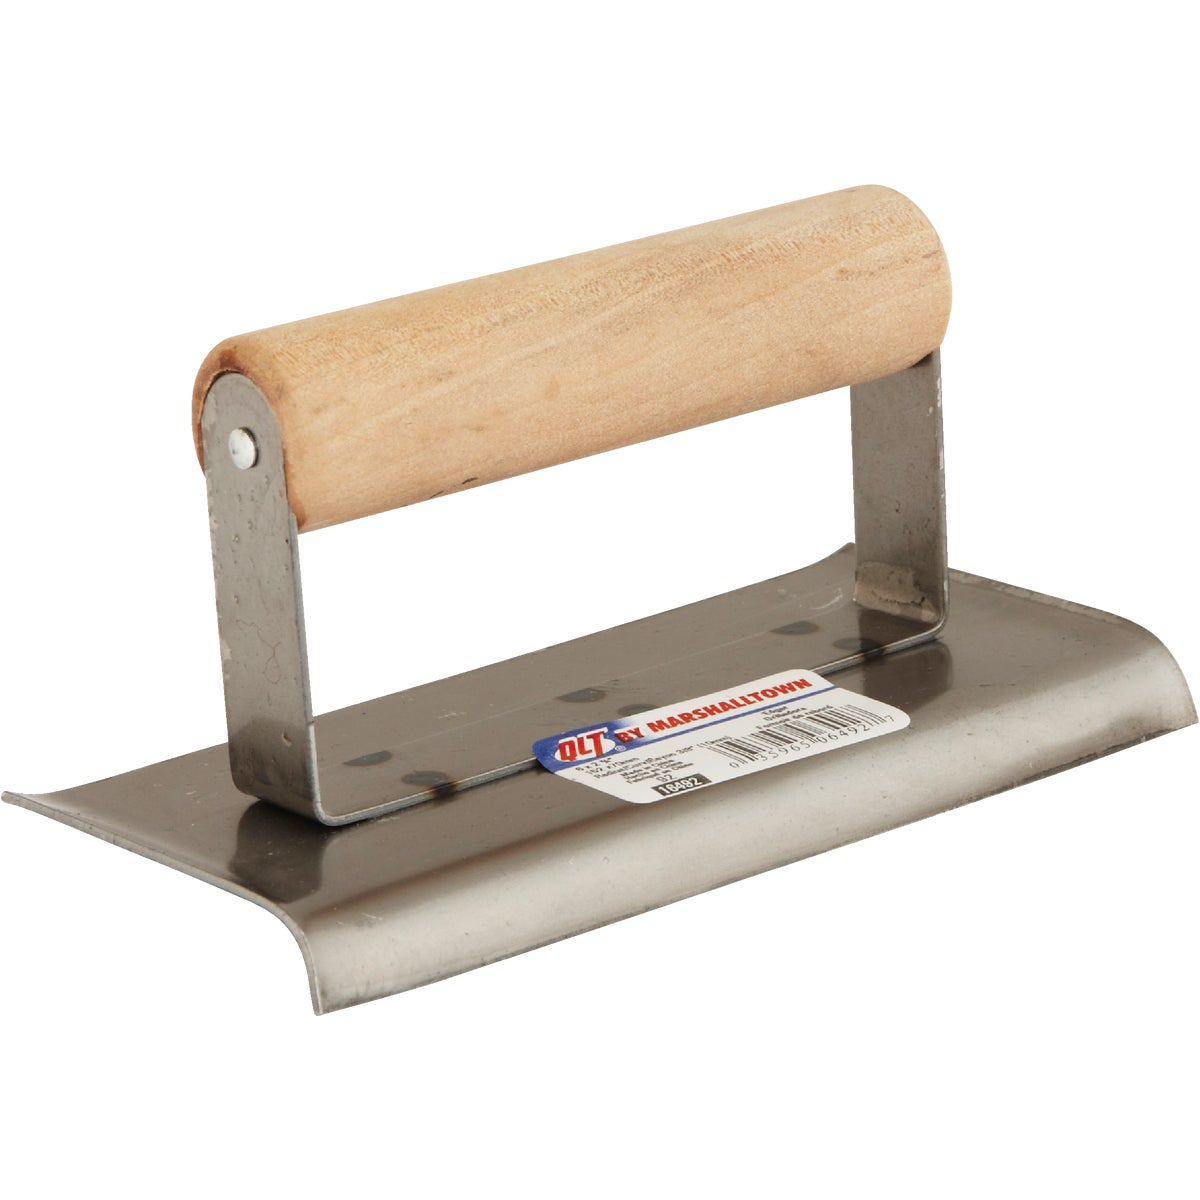 6X2-3/4 CURVED END EDGER - 16492 by Marshalltown Trowel